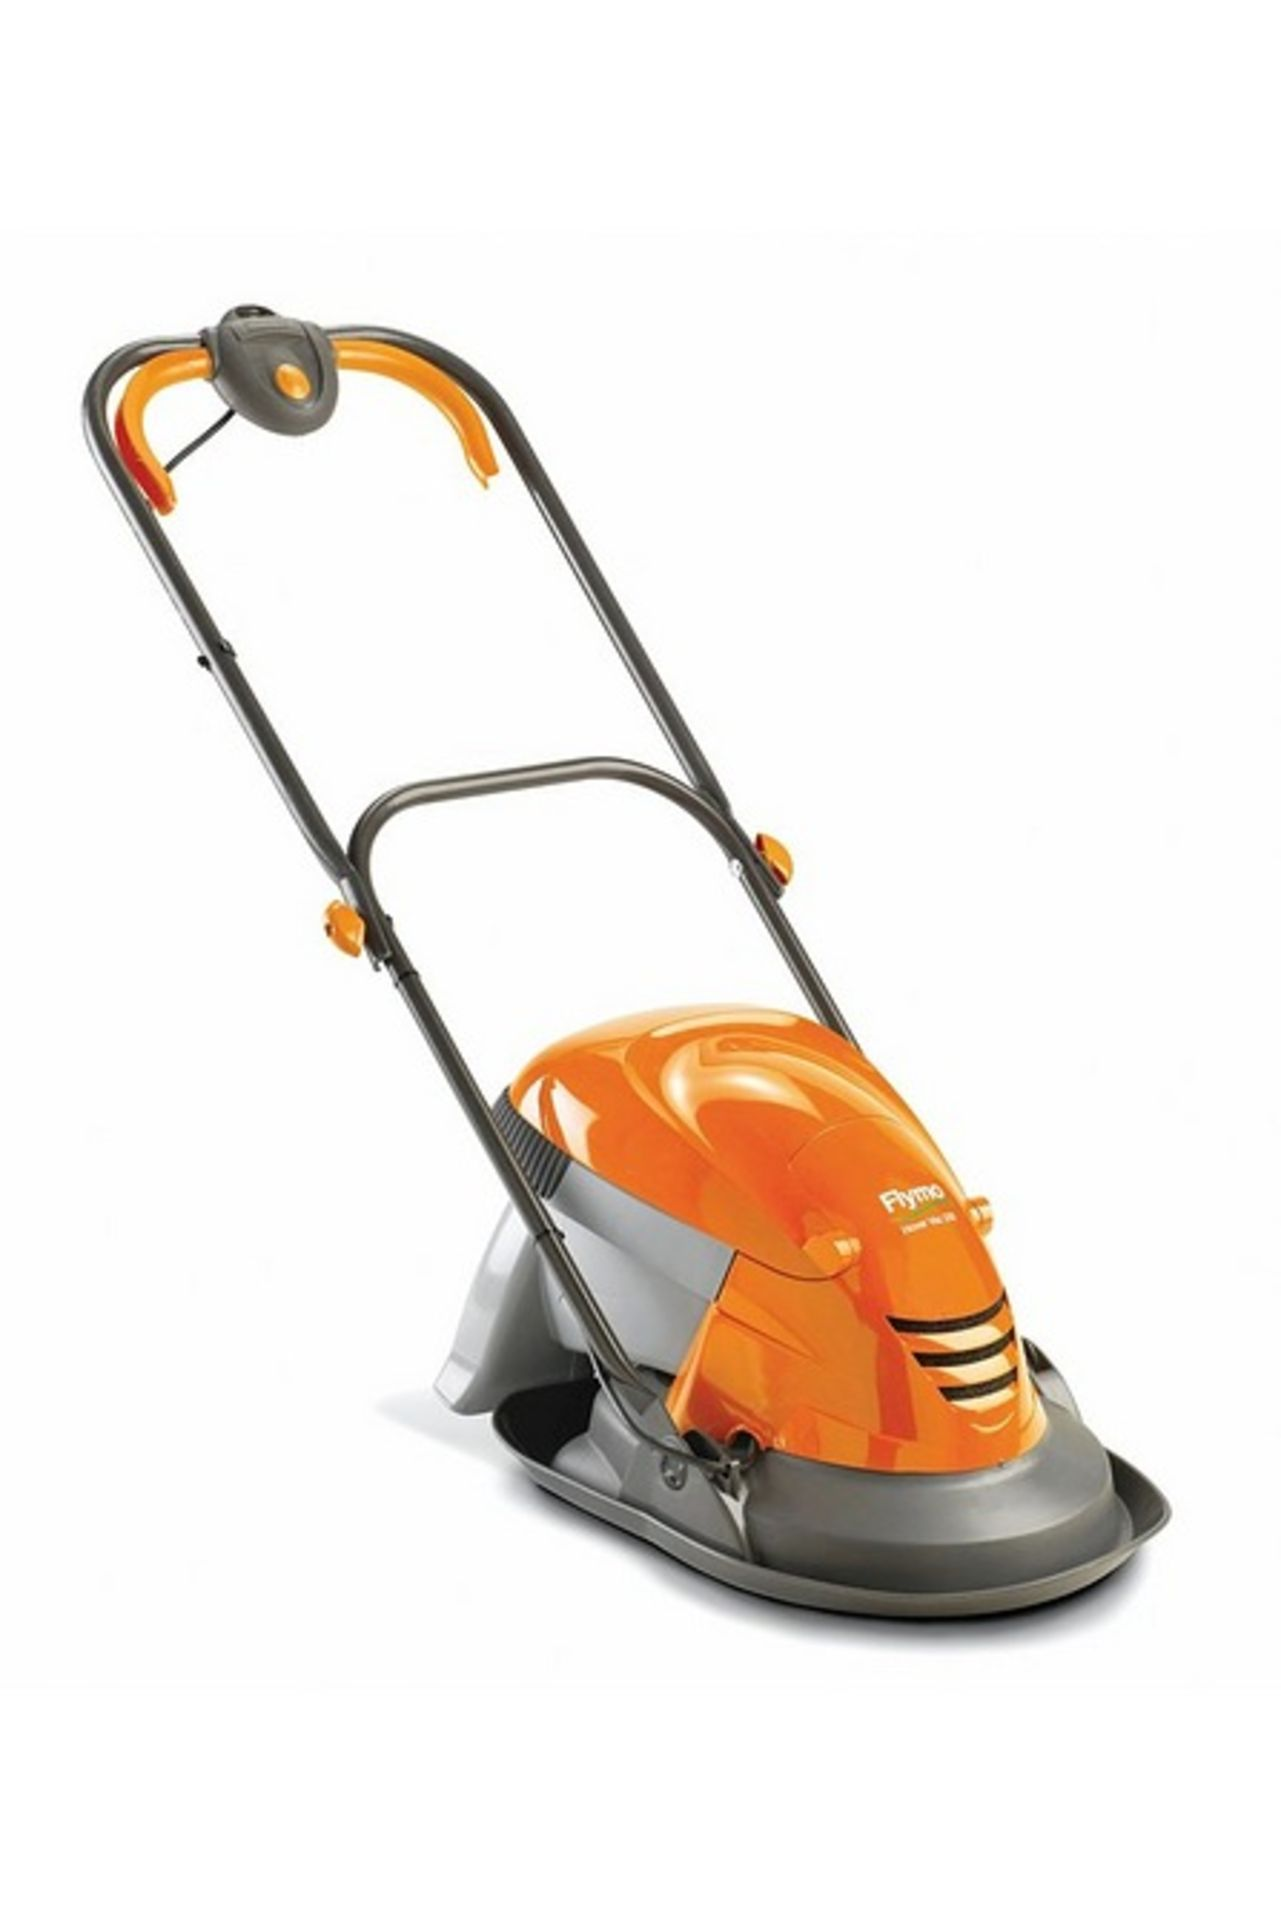 (P8) 1x Flymo Hover Vac 250 RRP £80. Contents Appear Clean, Unused. - Image 2 of 5